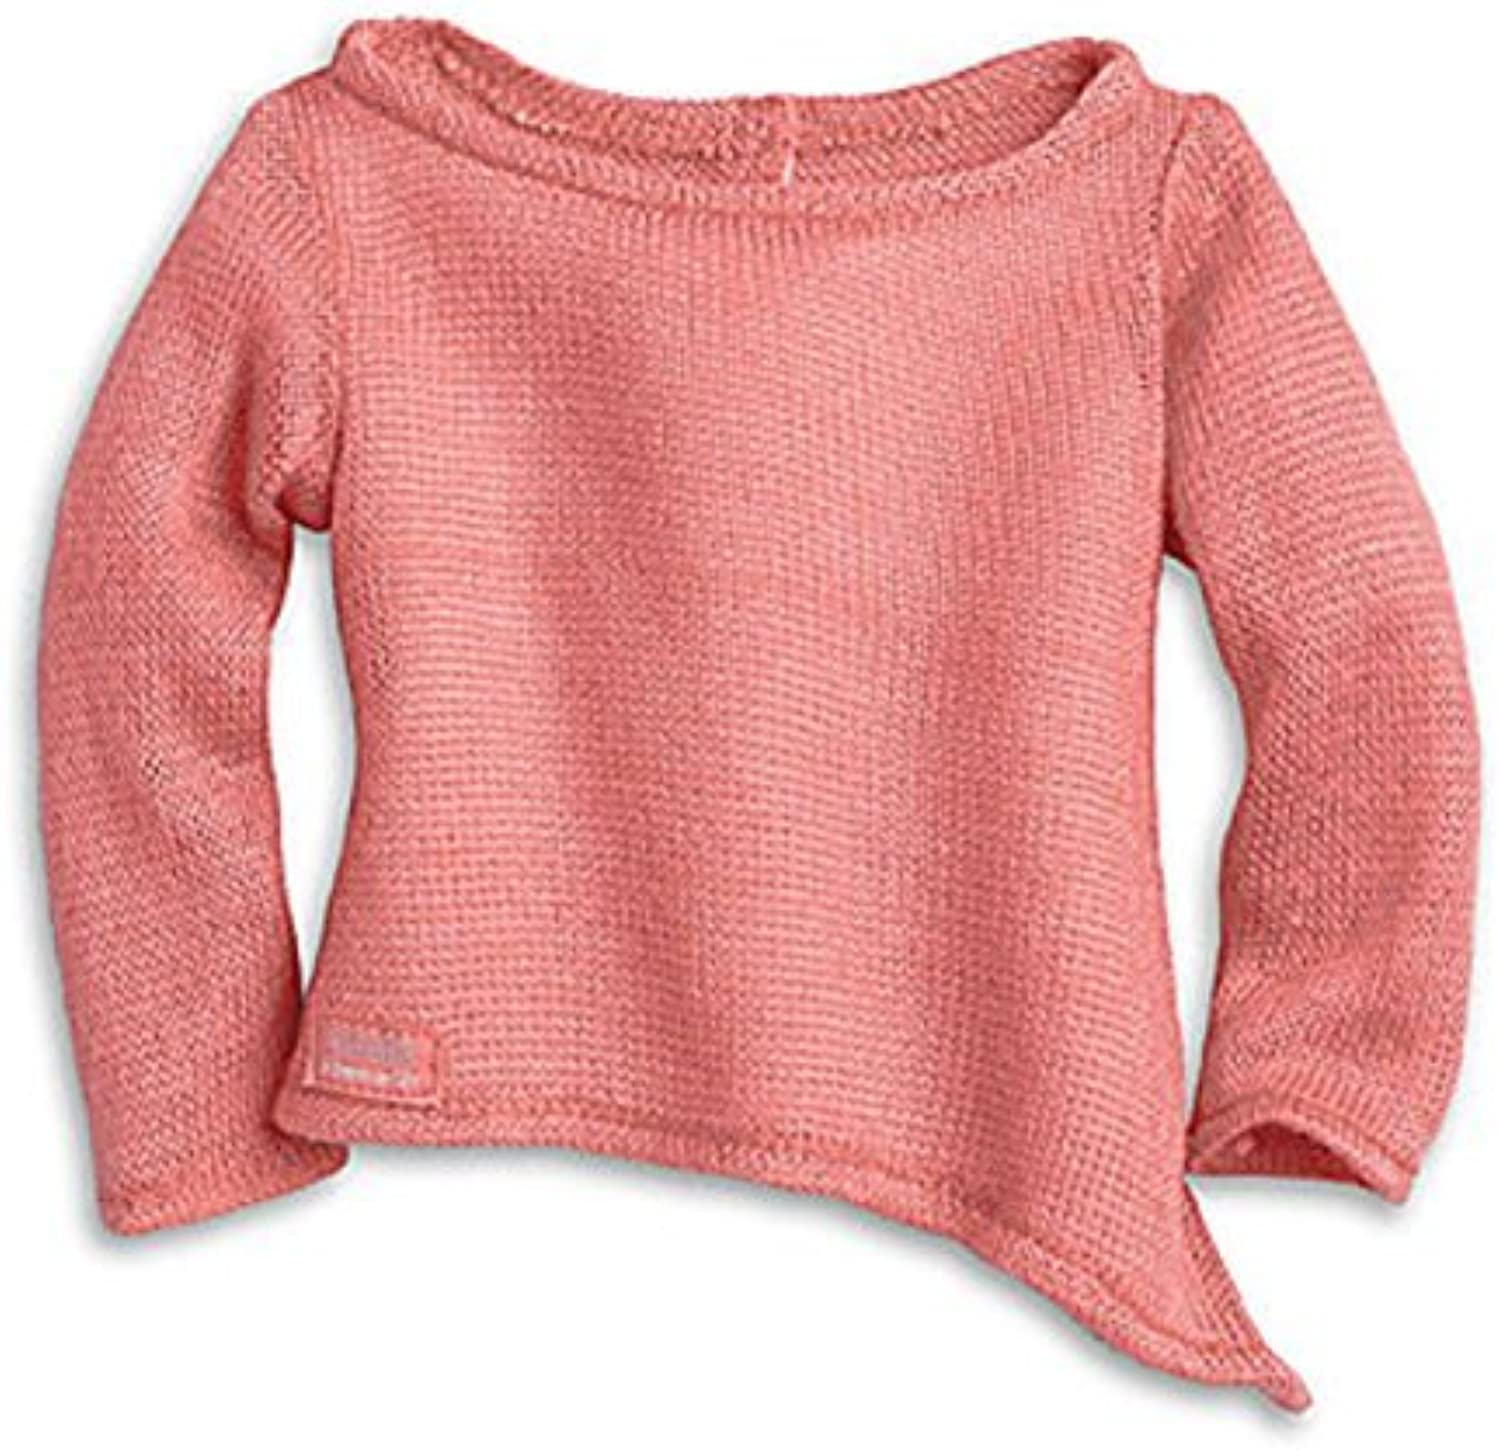 American Girl Isabelle  Isabelle's Coral Sweater  American Girl of 2014